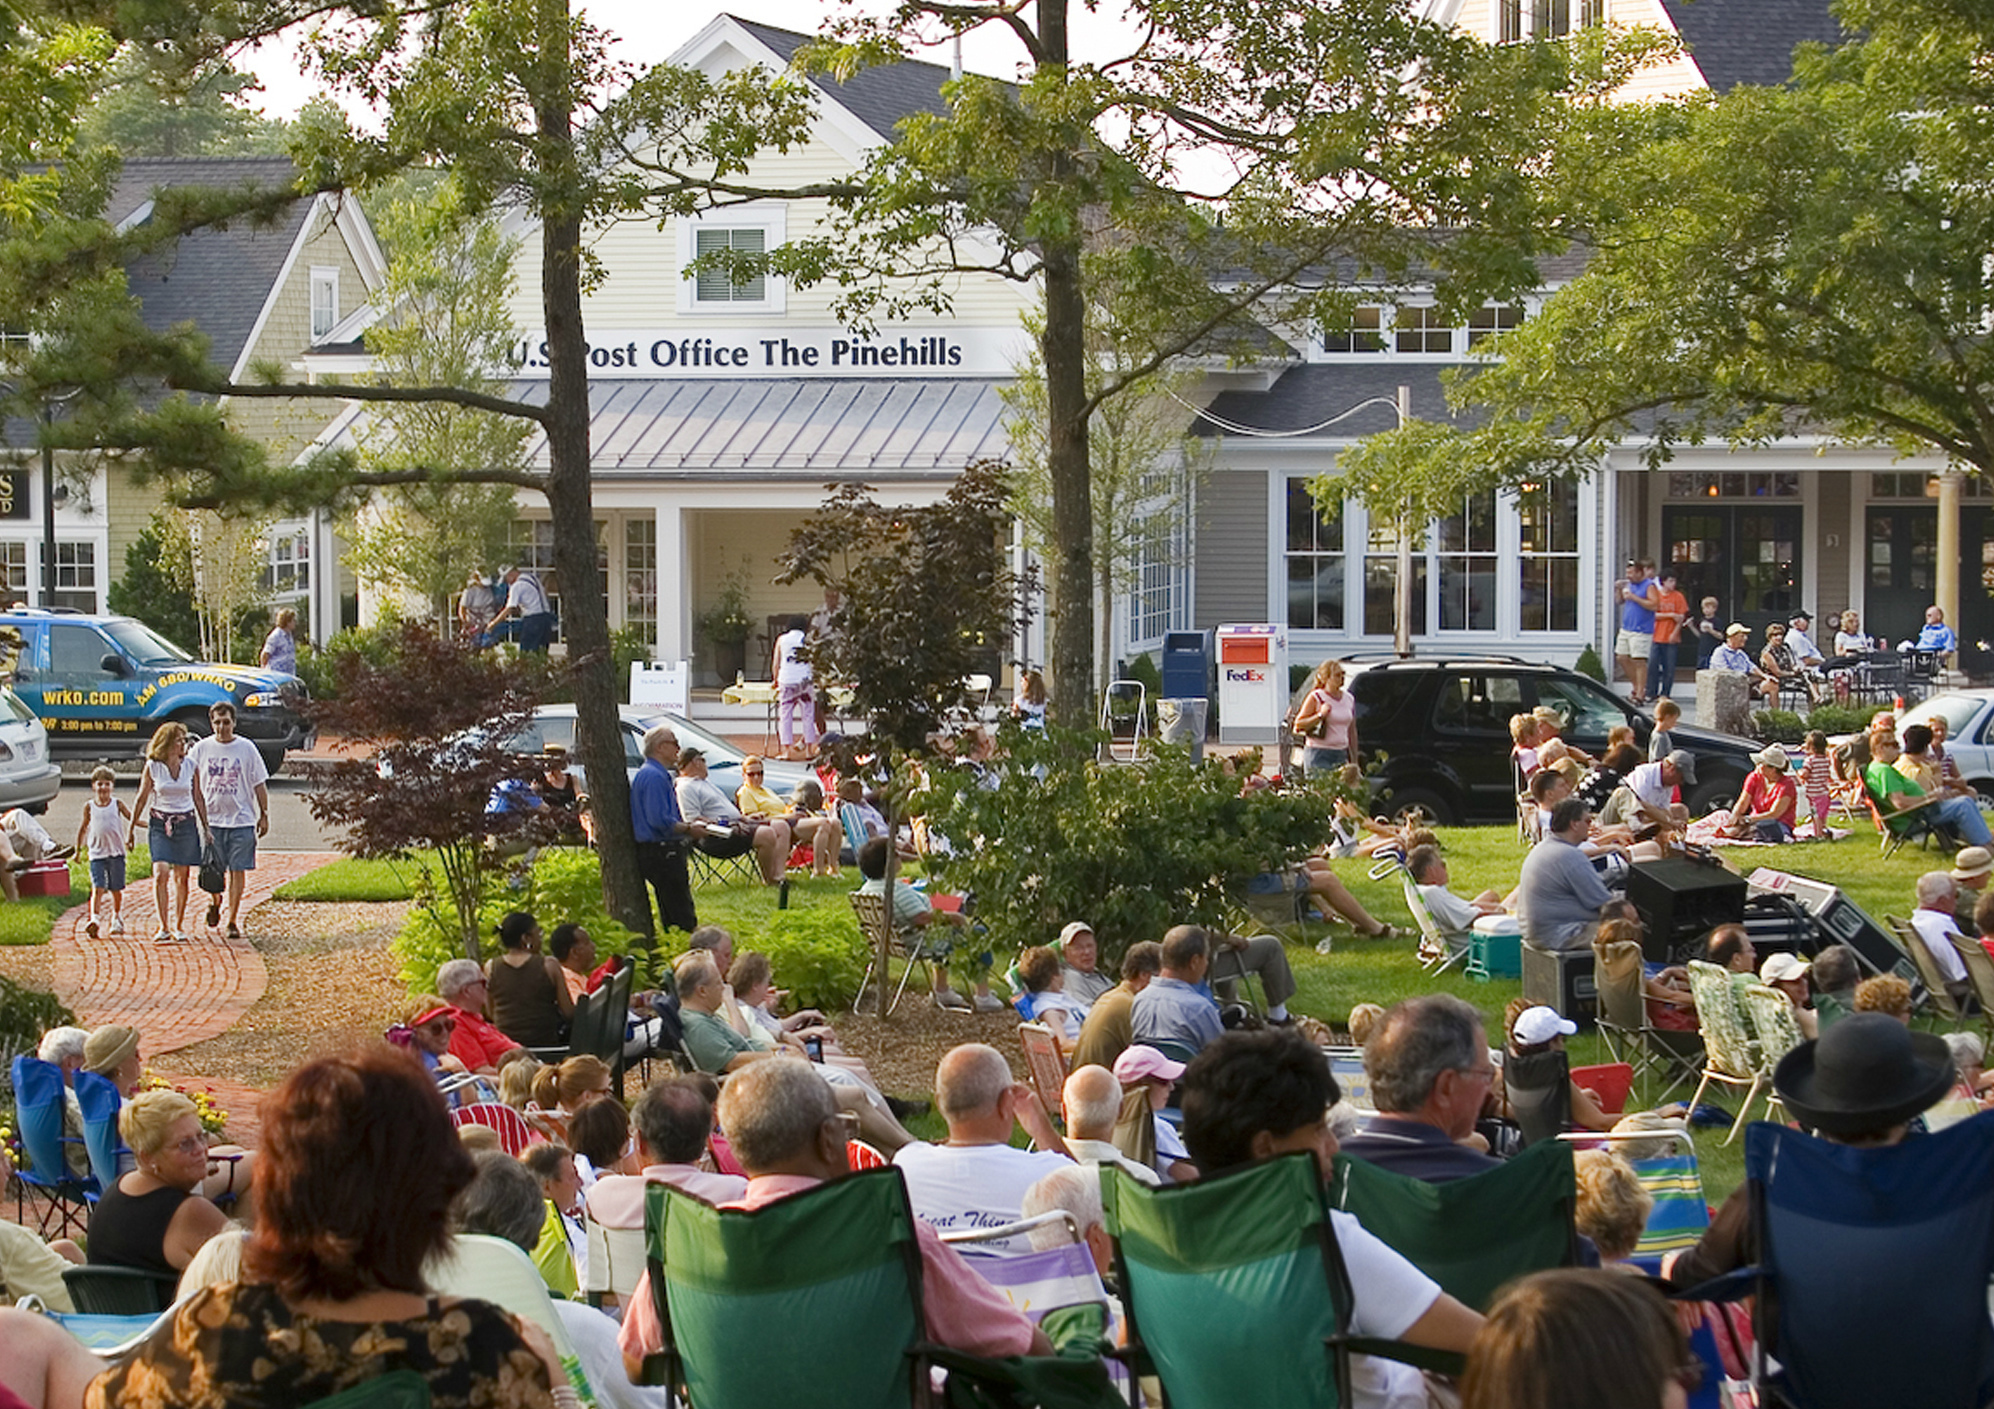 The Pinehills Village Green is the Location of Events all Year Round